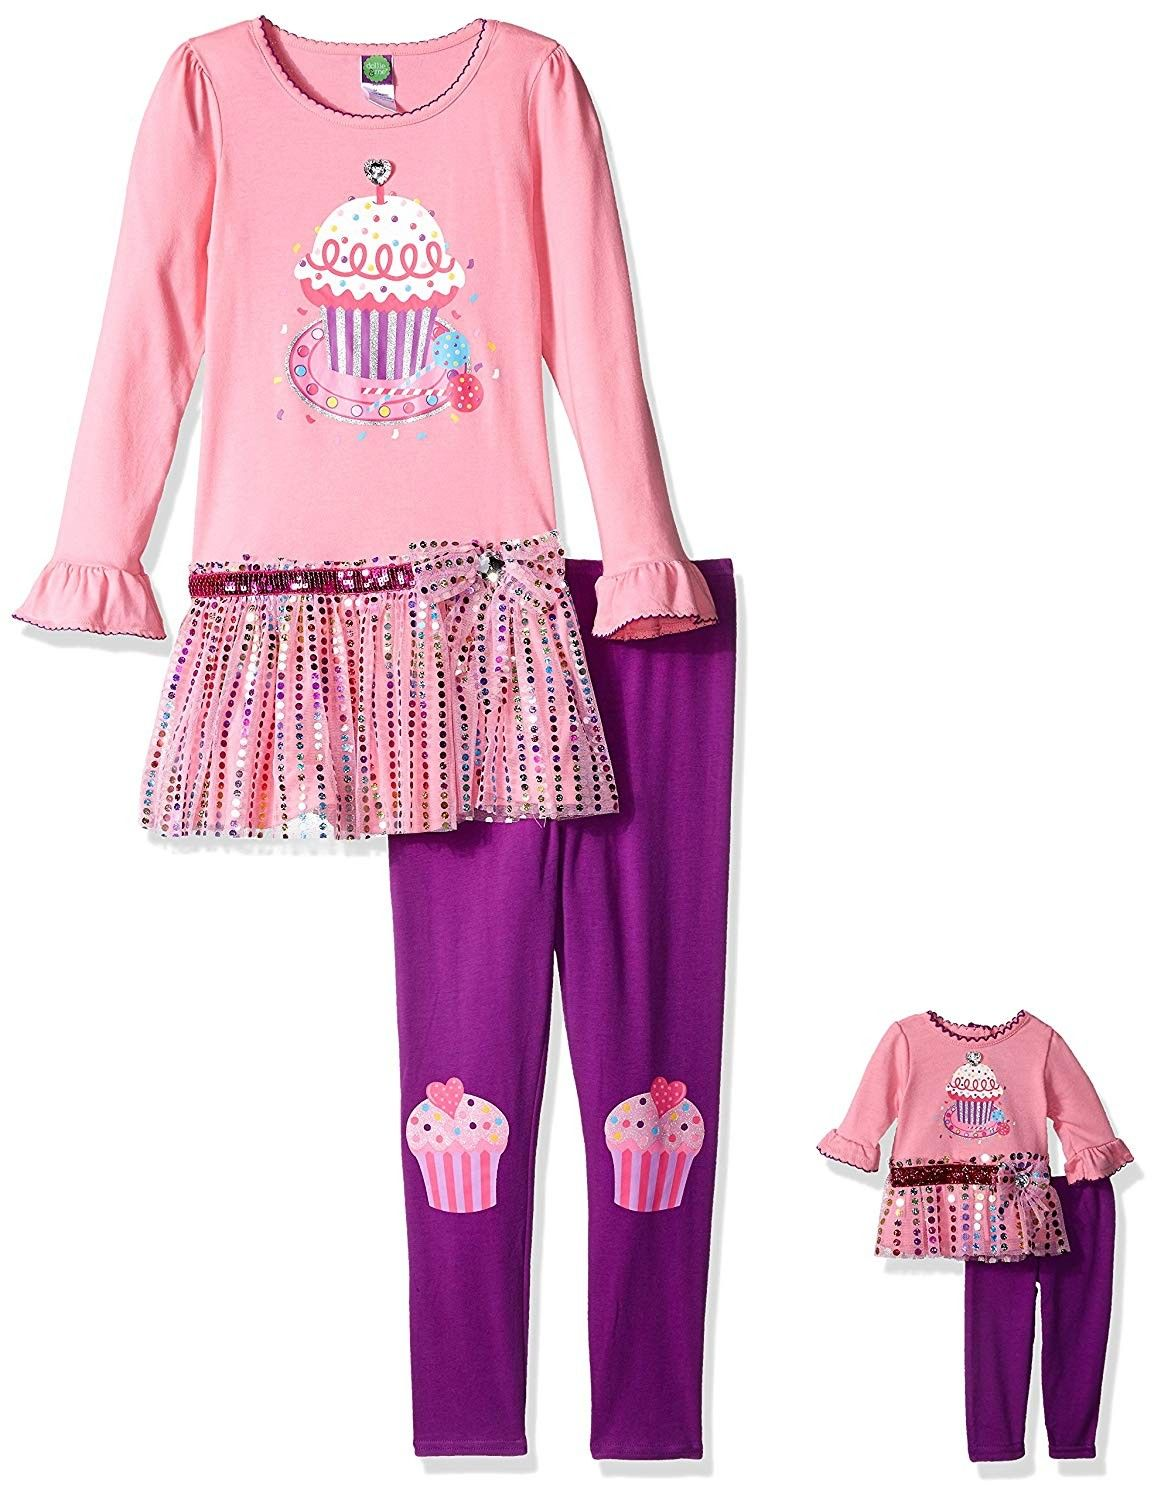 "Dollie and Me Sparkley Legging Set W//matching outfit for 18/"" Play Doll Purple"